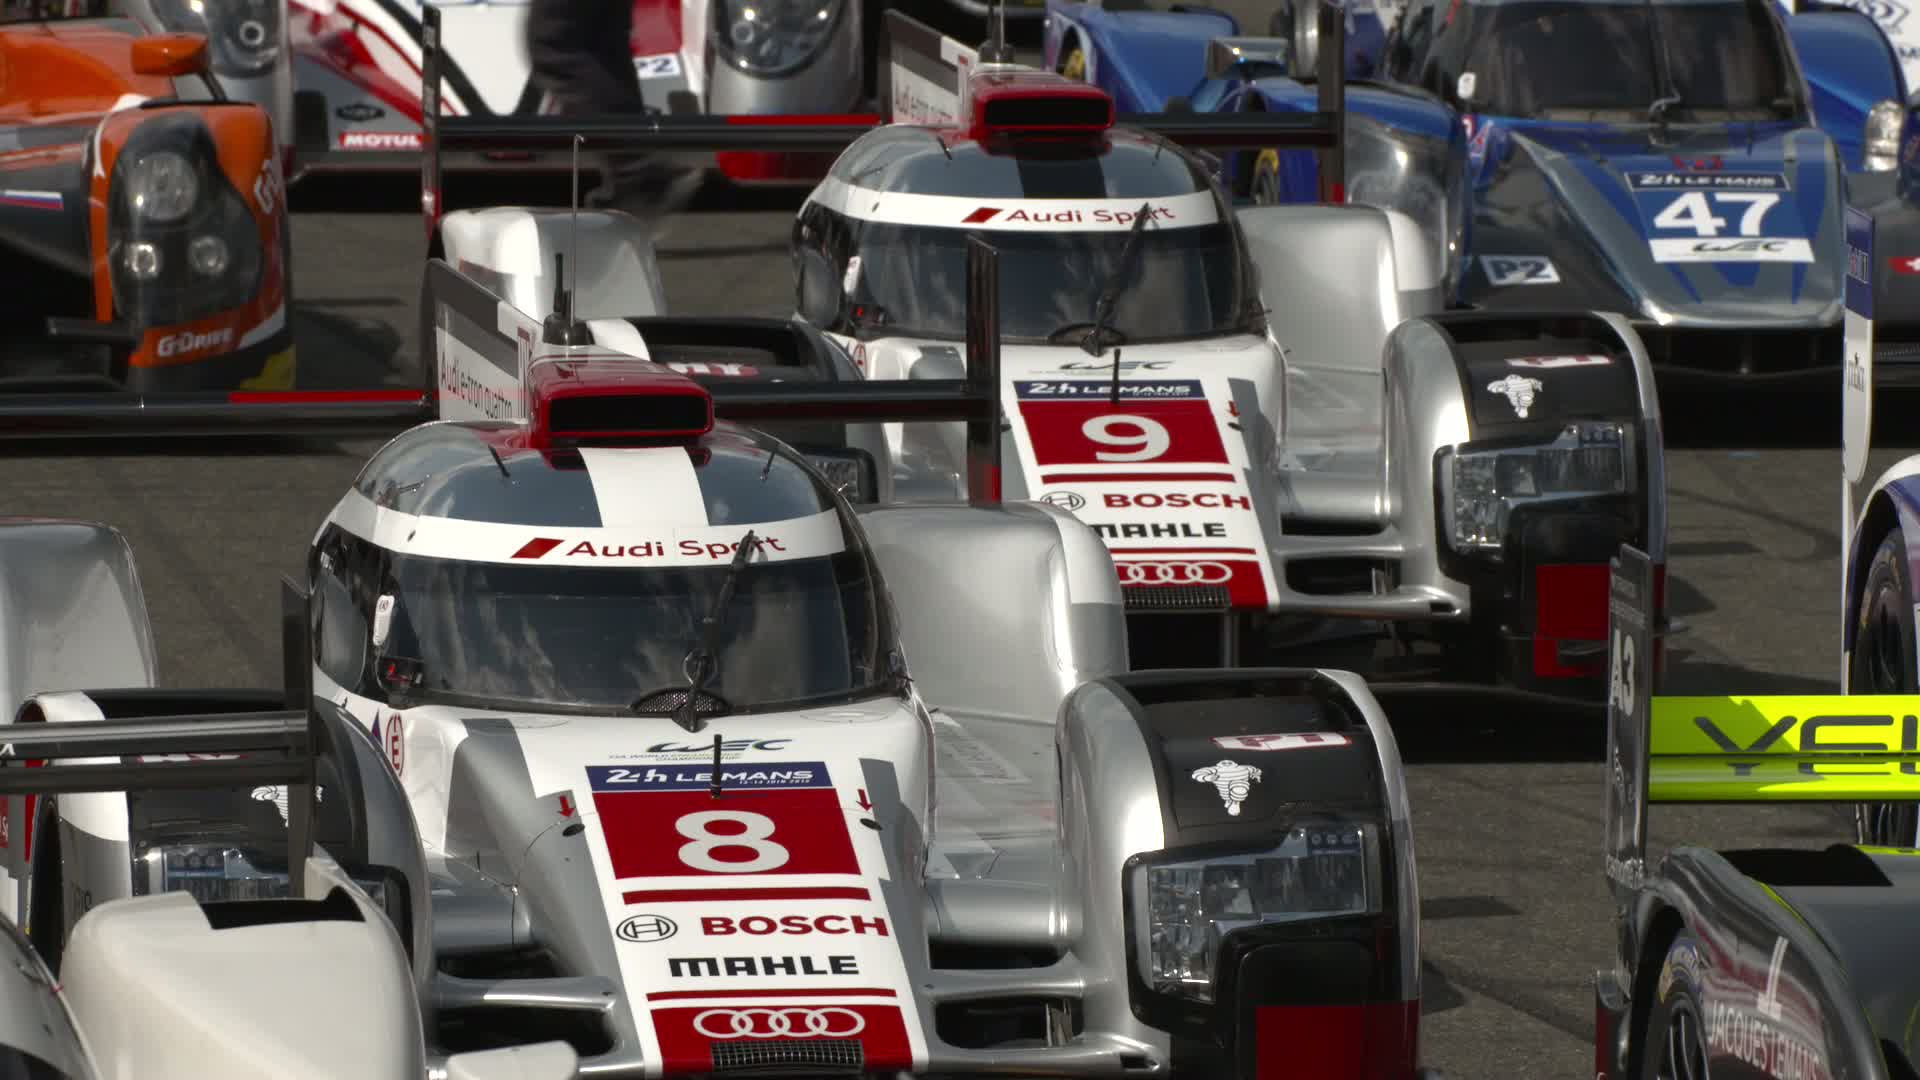 60 Seconds of Audi Sport 31/2015 - Le Mans Pre-Test Day 1